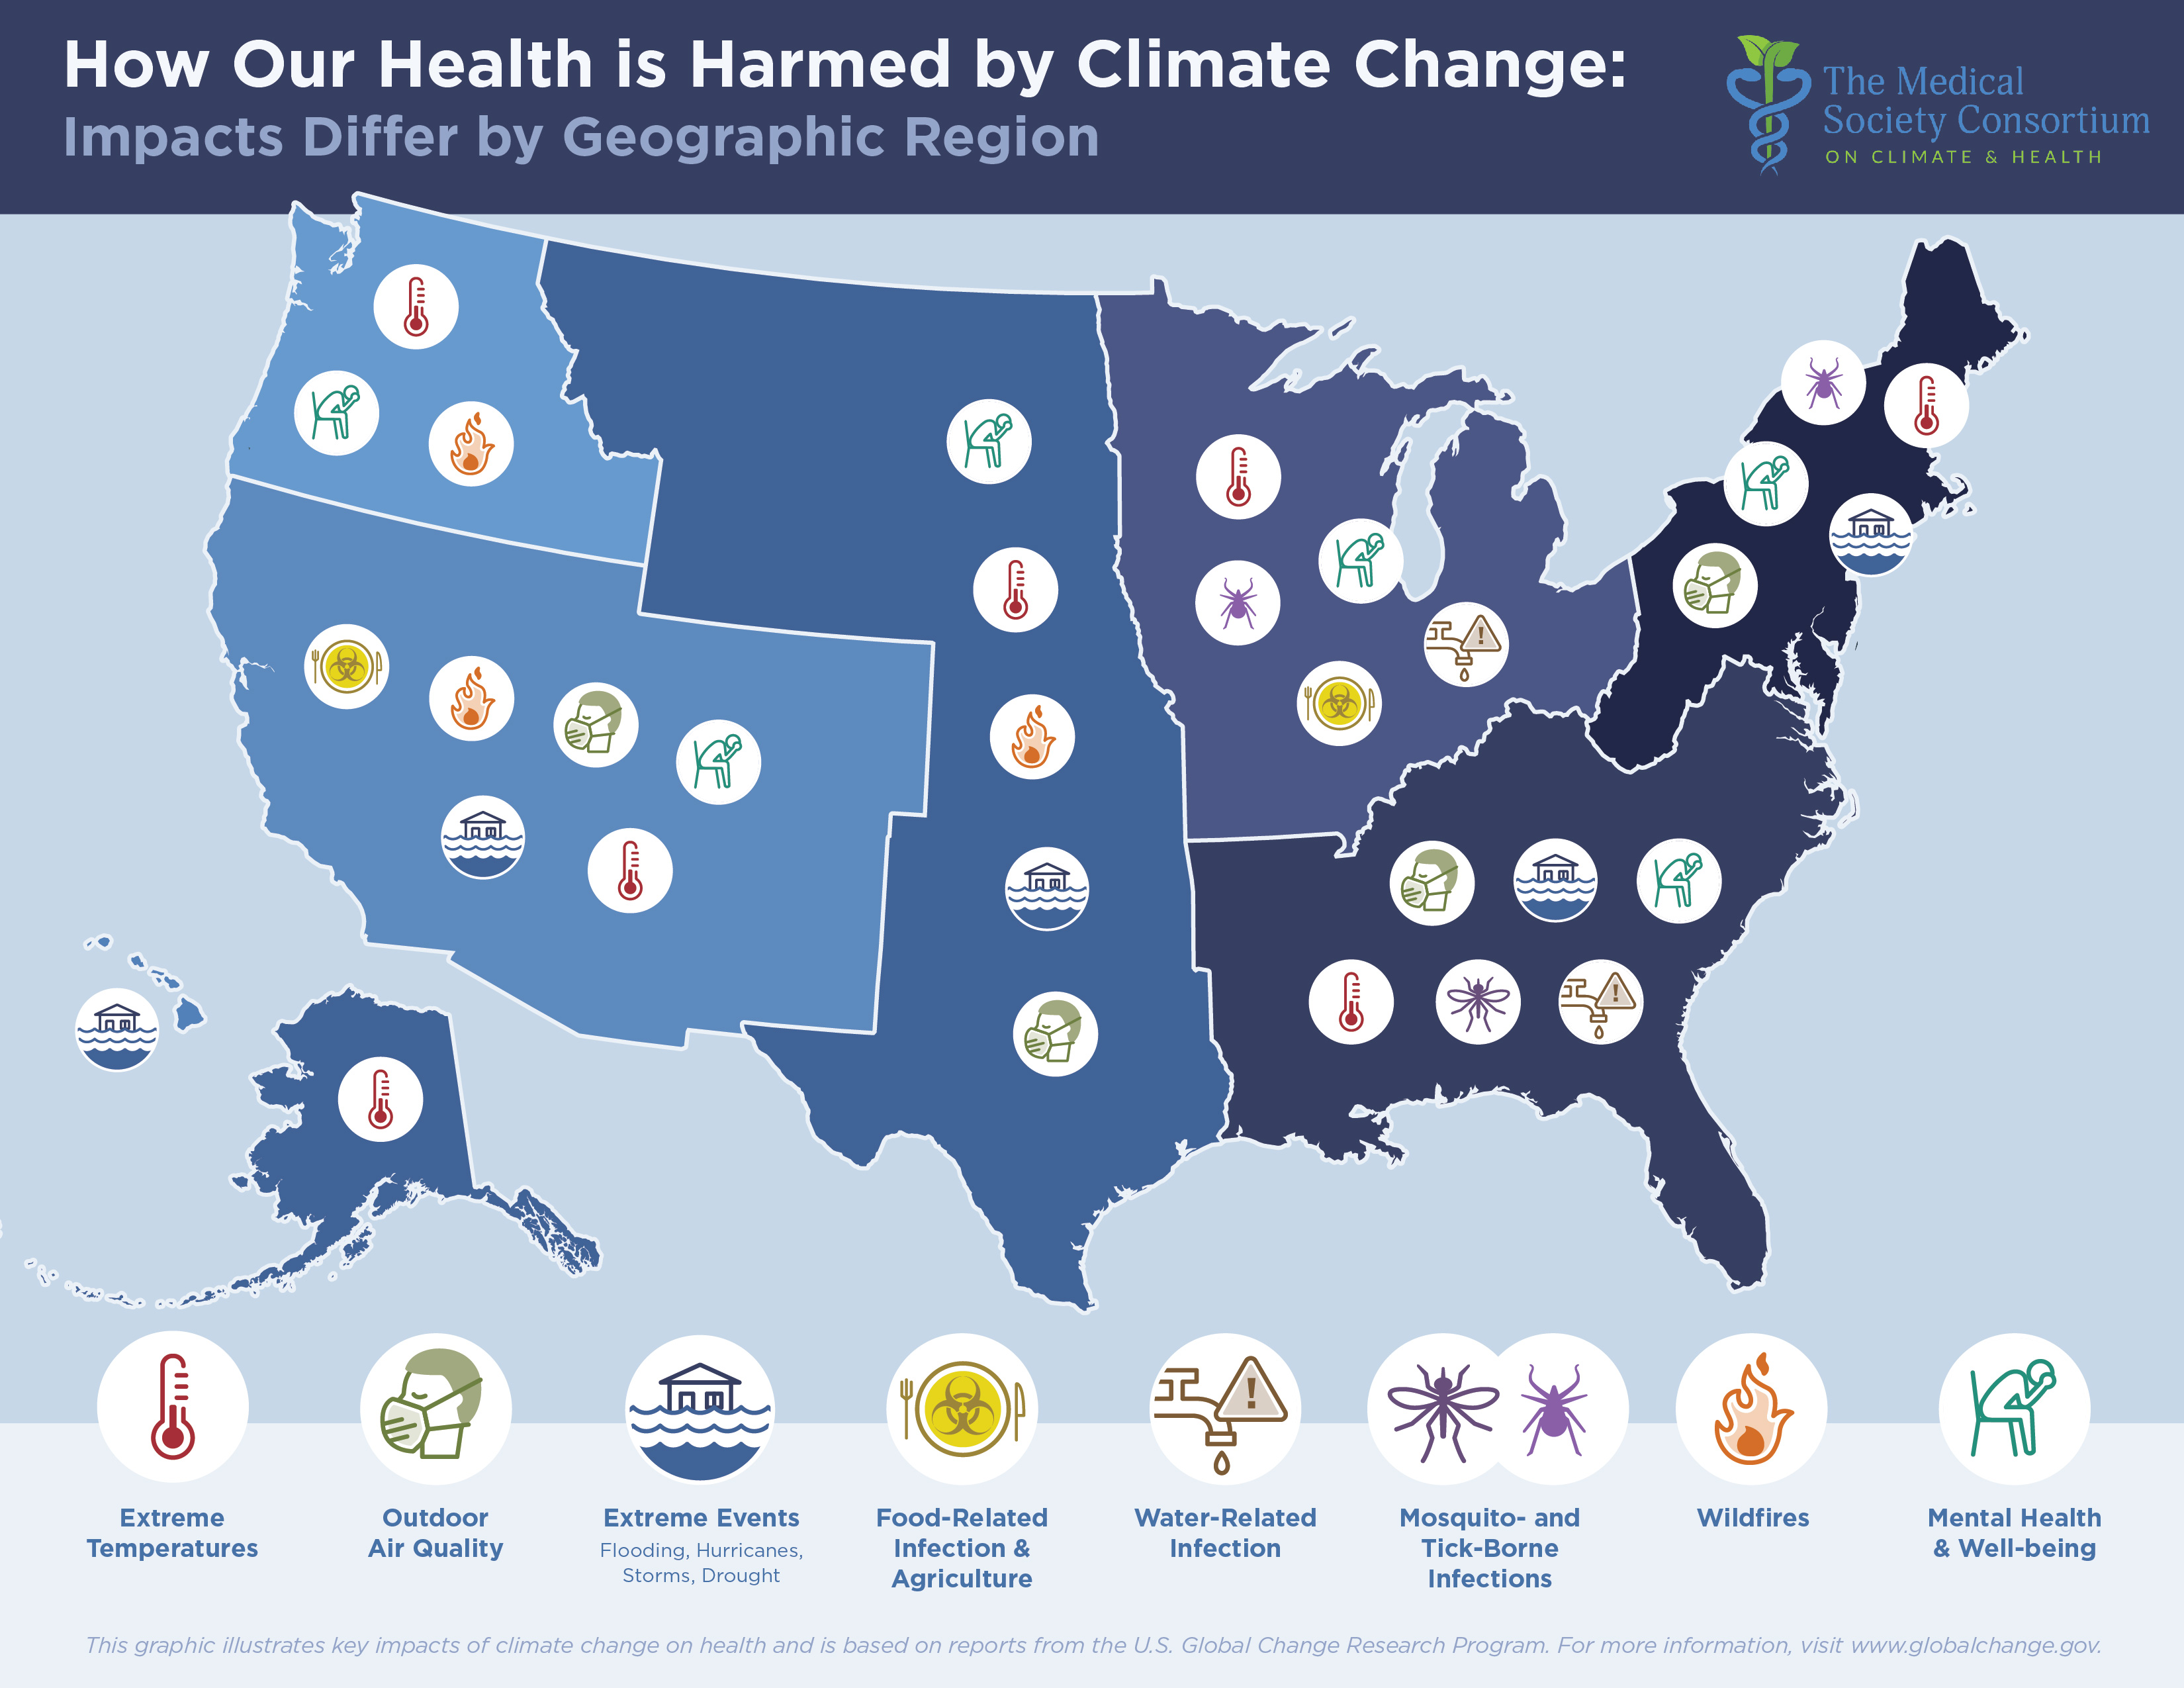 Map Shows How Climate Change Will Affect Health Across US ... on communicable disease map, immune response map, heart disease map, human disturbance map, liver disease map, postpartum care map, fungal disease map, disease mind map, zoonotic disease map, malaria map, trichinosis map, endemic disease map, diabetes map, psychiatry map, autoimmune disease map, neonatal care map, global disease map, infectious skin diseases, chagas disease map,